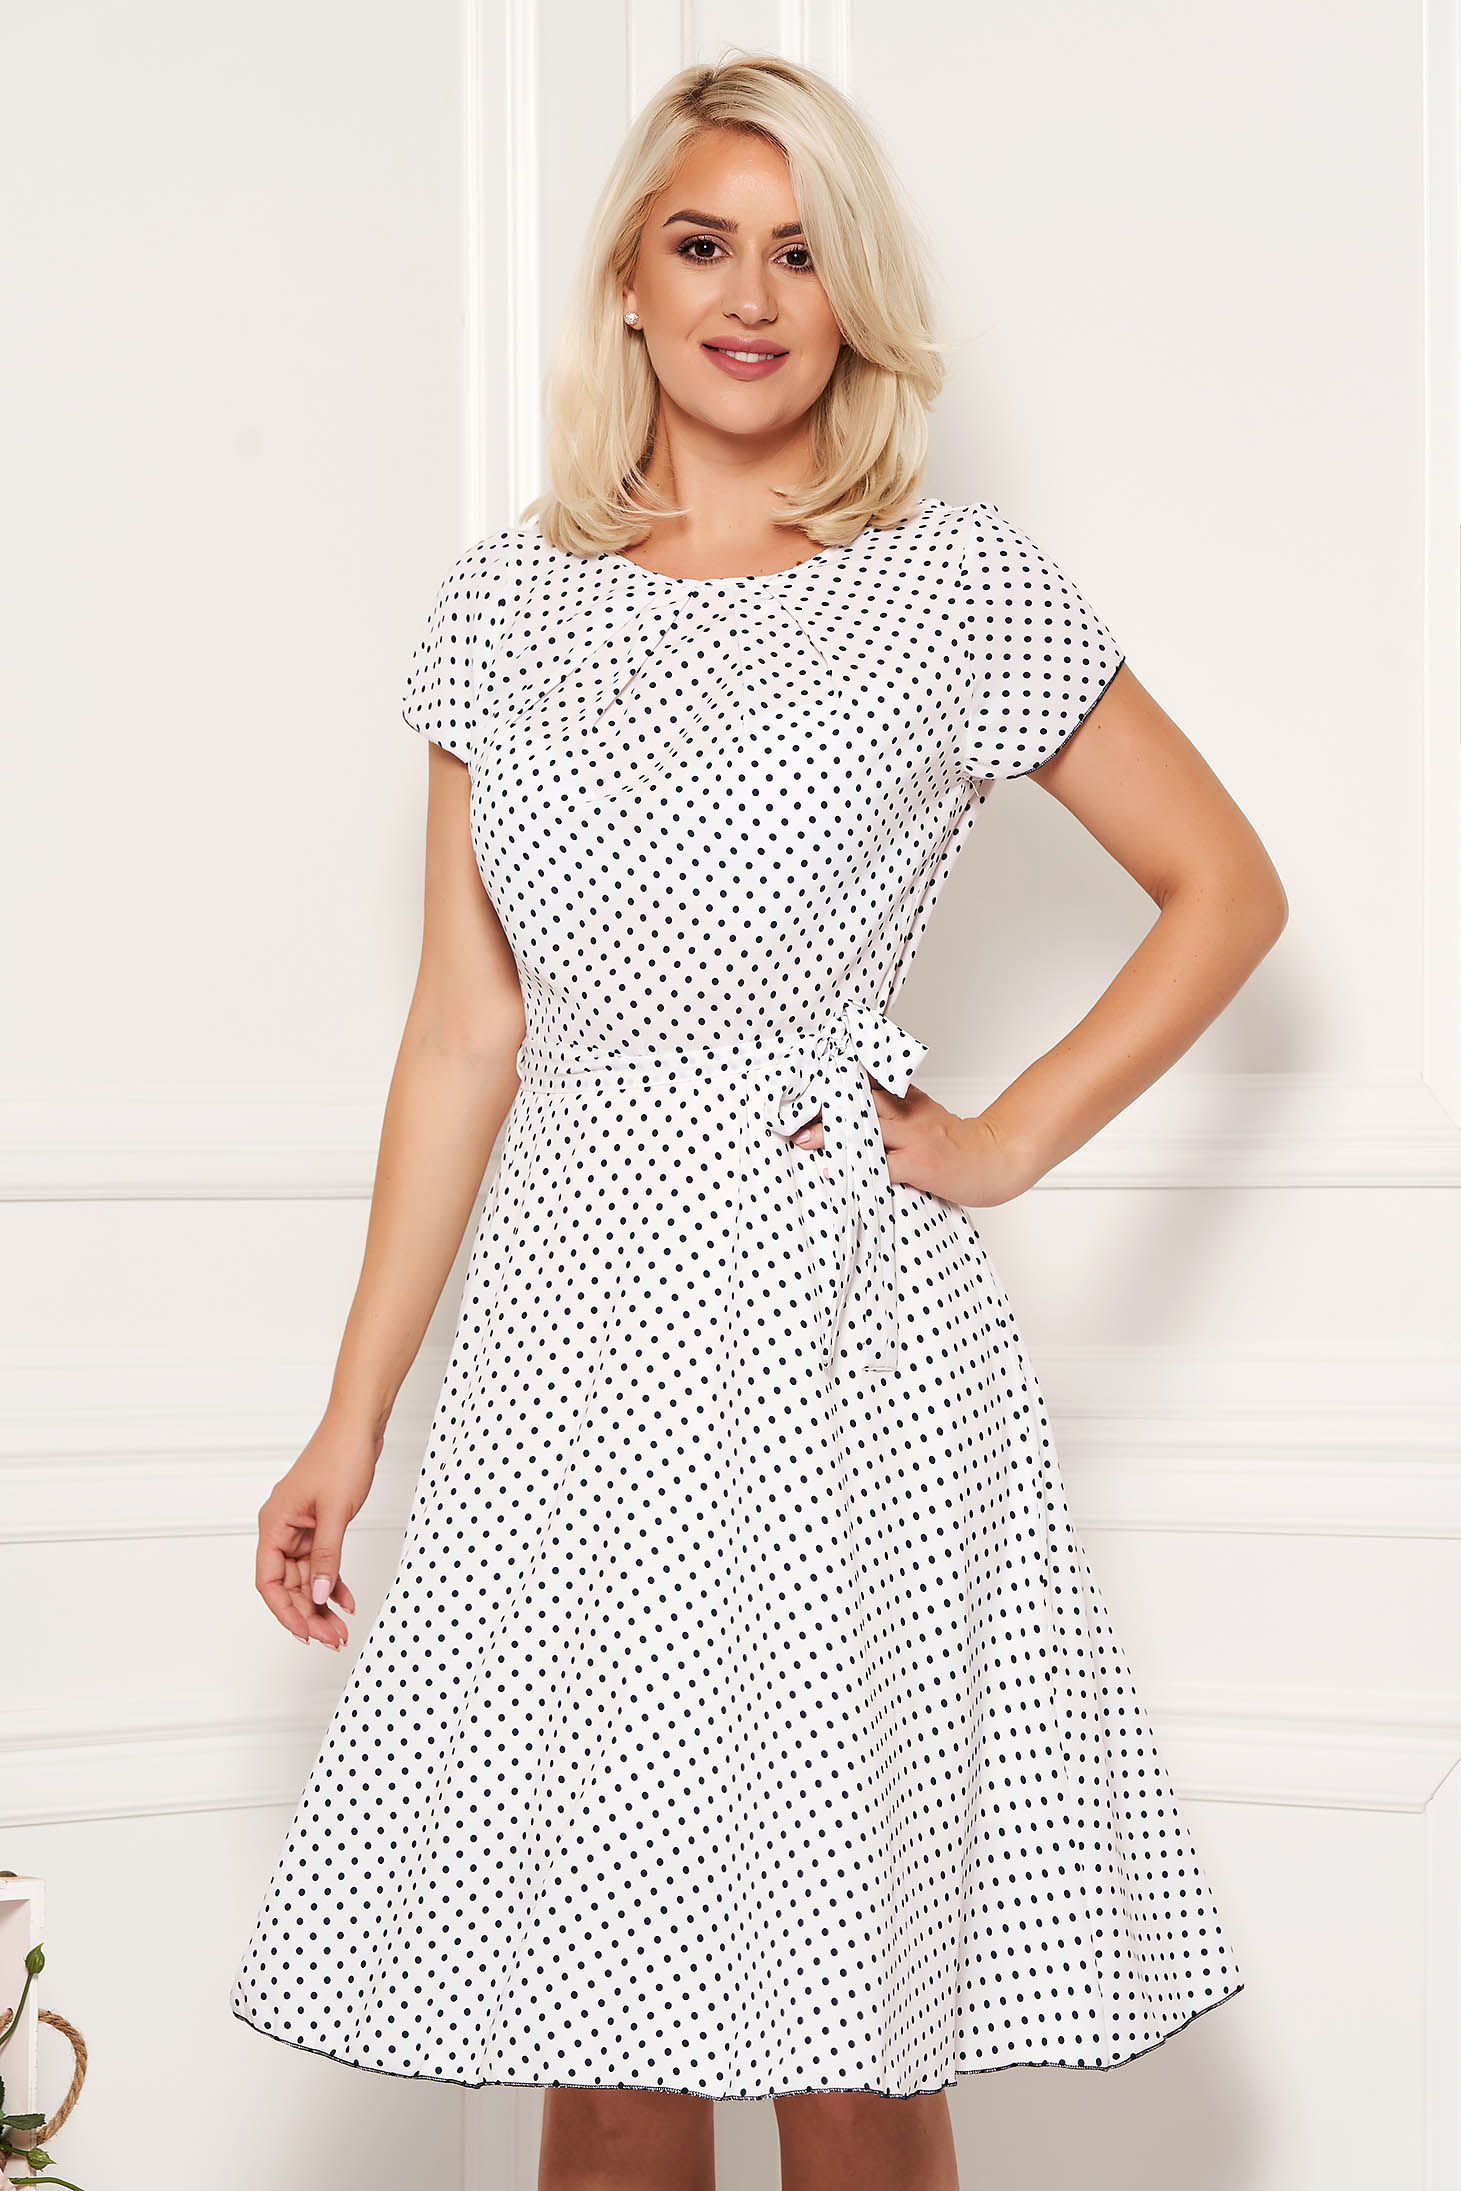 White dress daily dots print with rounded cleavage cloche midi